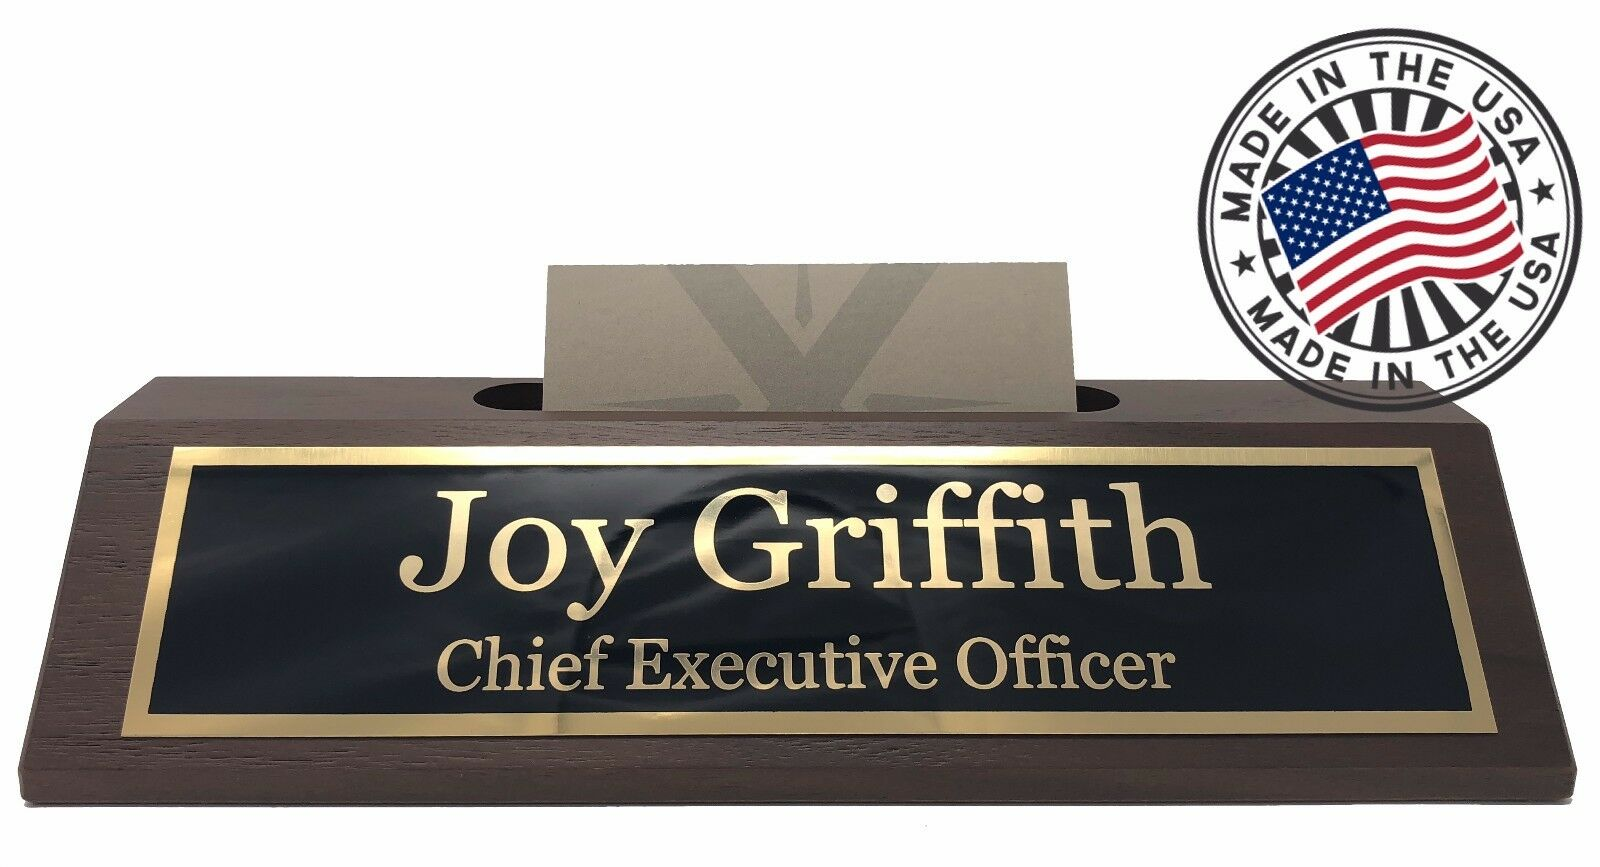 Personalized business desk name plate with card holder made in usa personalized business desk name plate with card holder made in usa walnut 1 of 4free shipping colourmoves